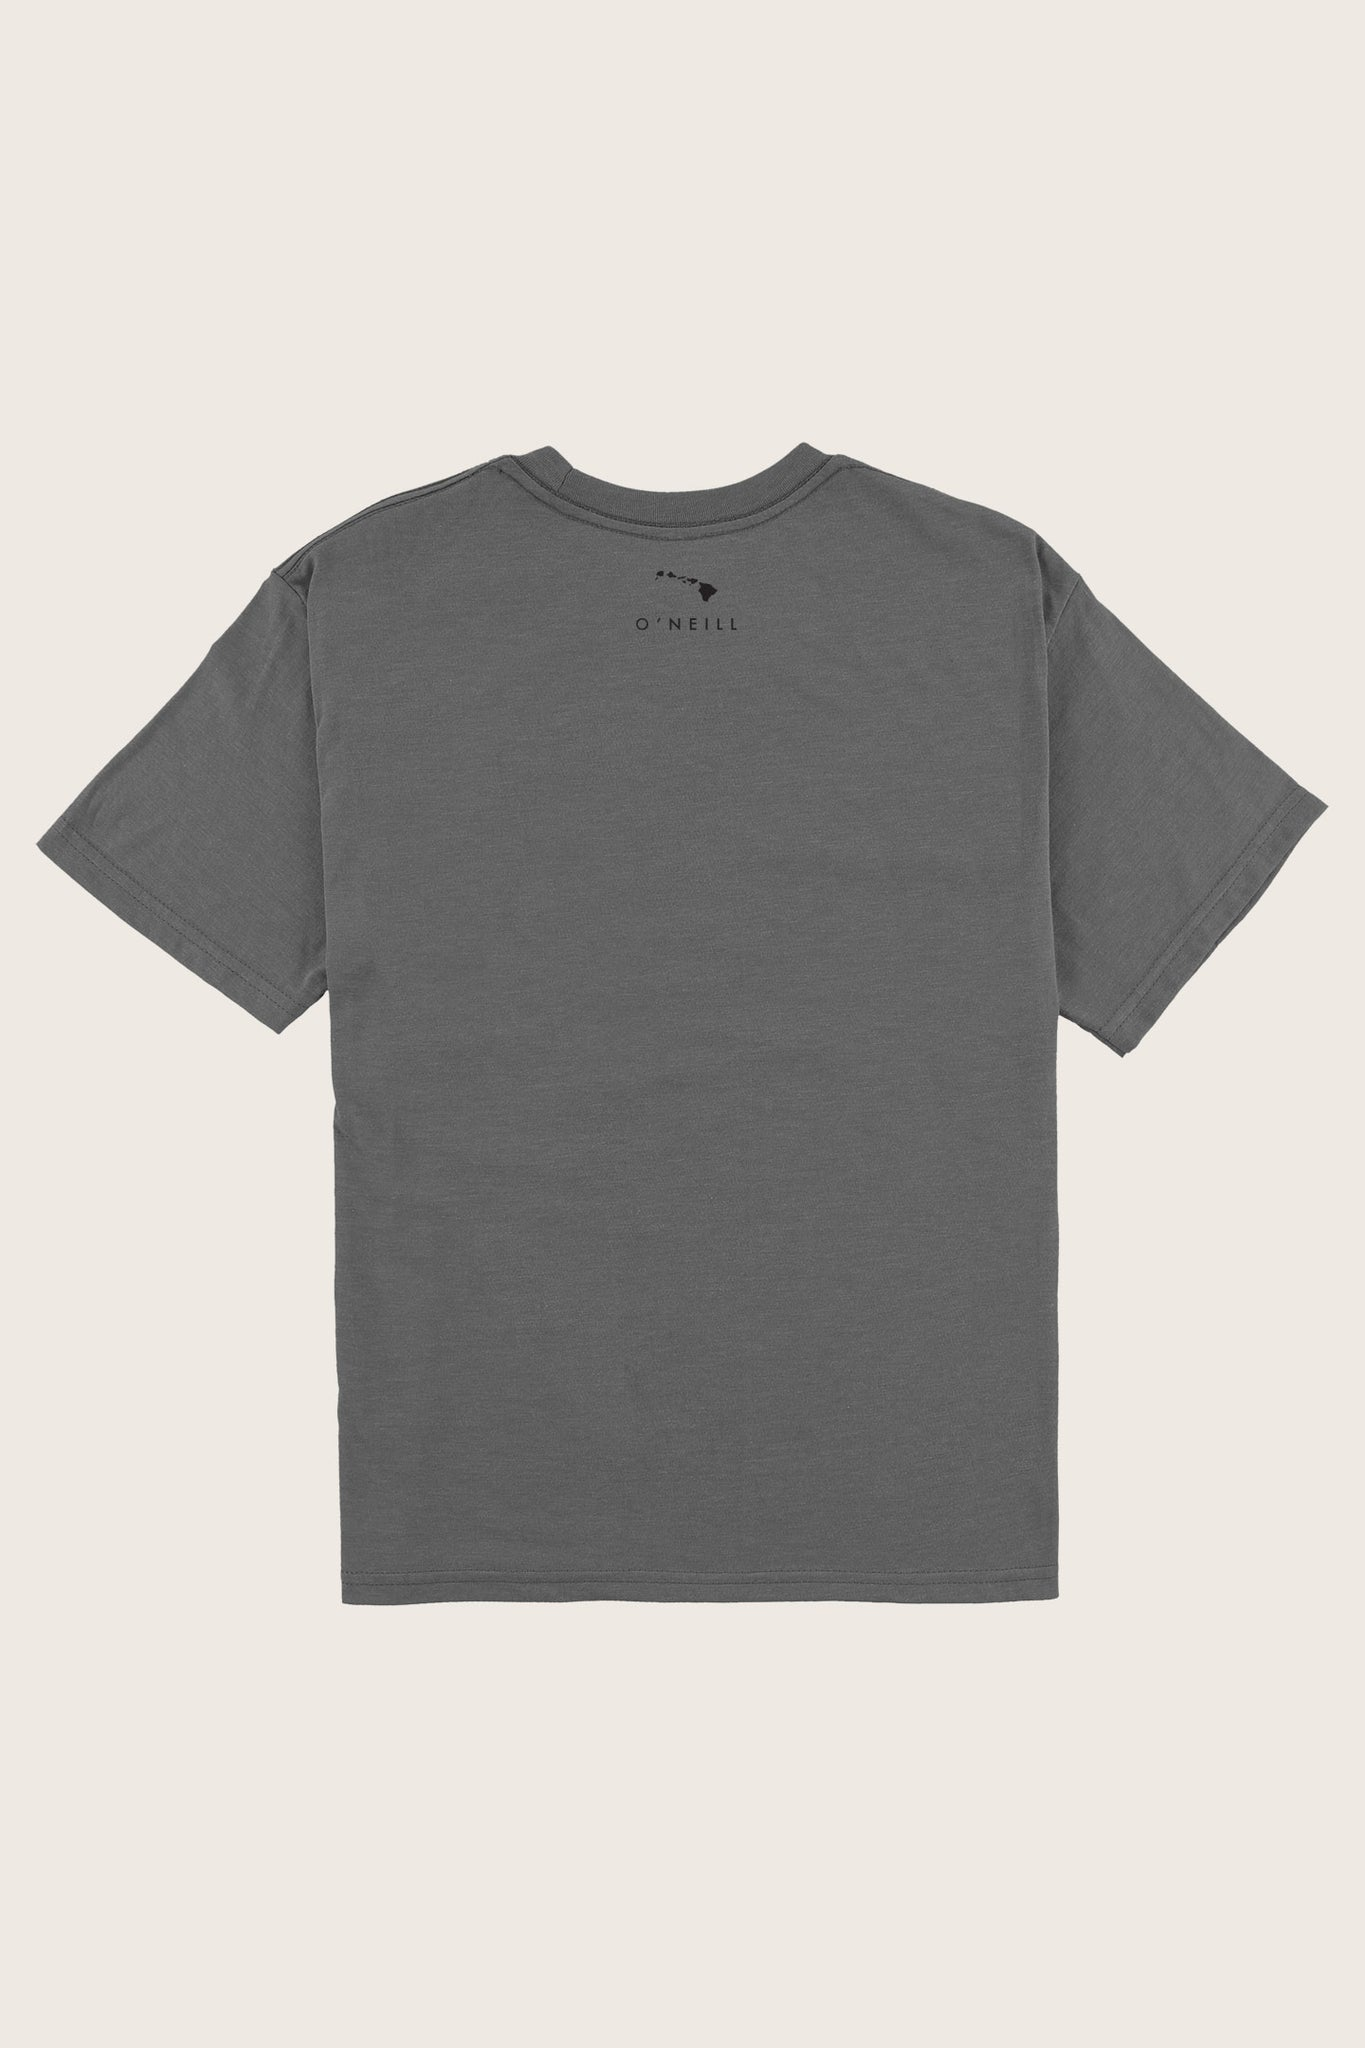 Boys Upcountry Tee - Medium Heather Grey | O'Neill